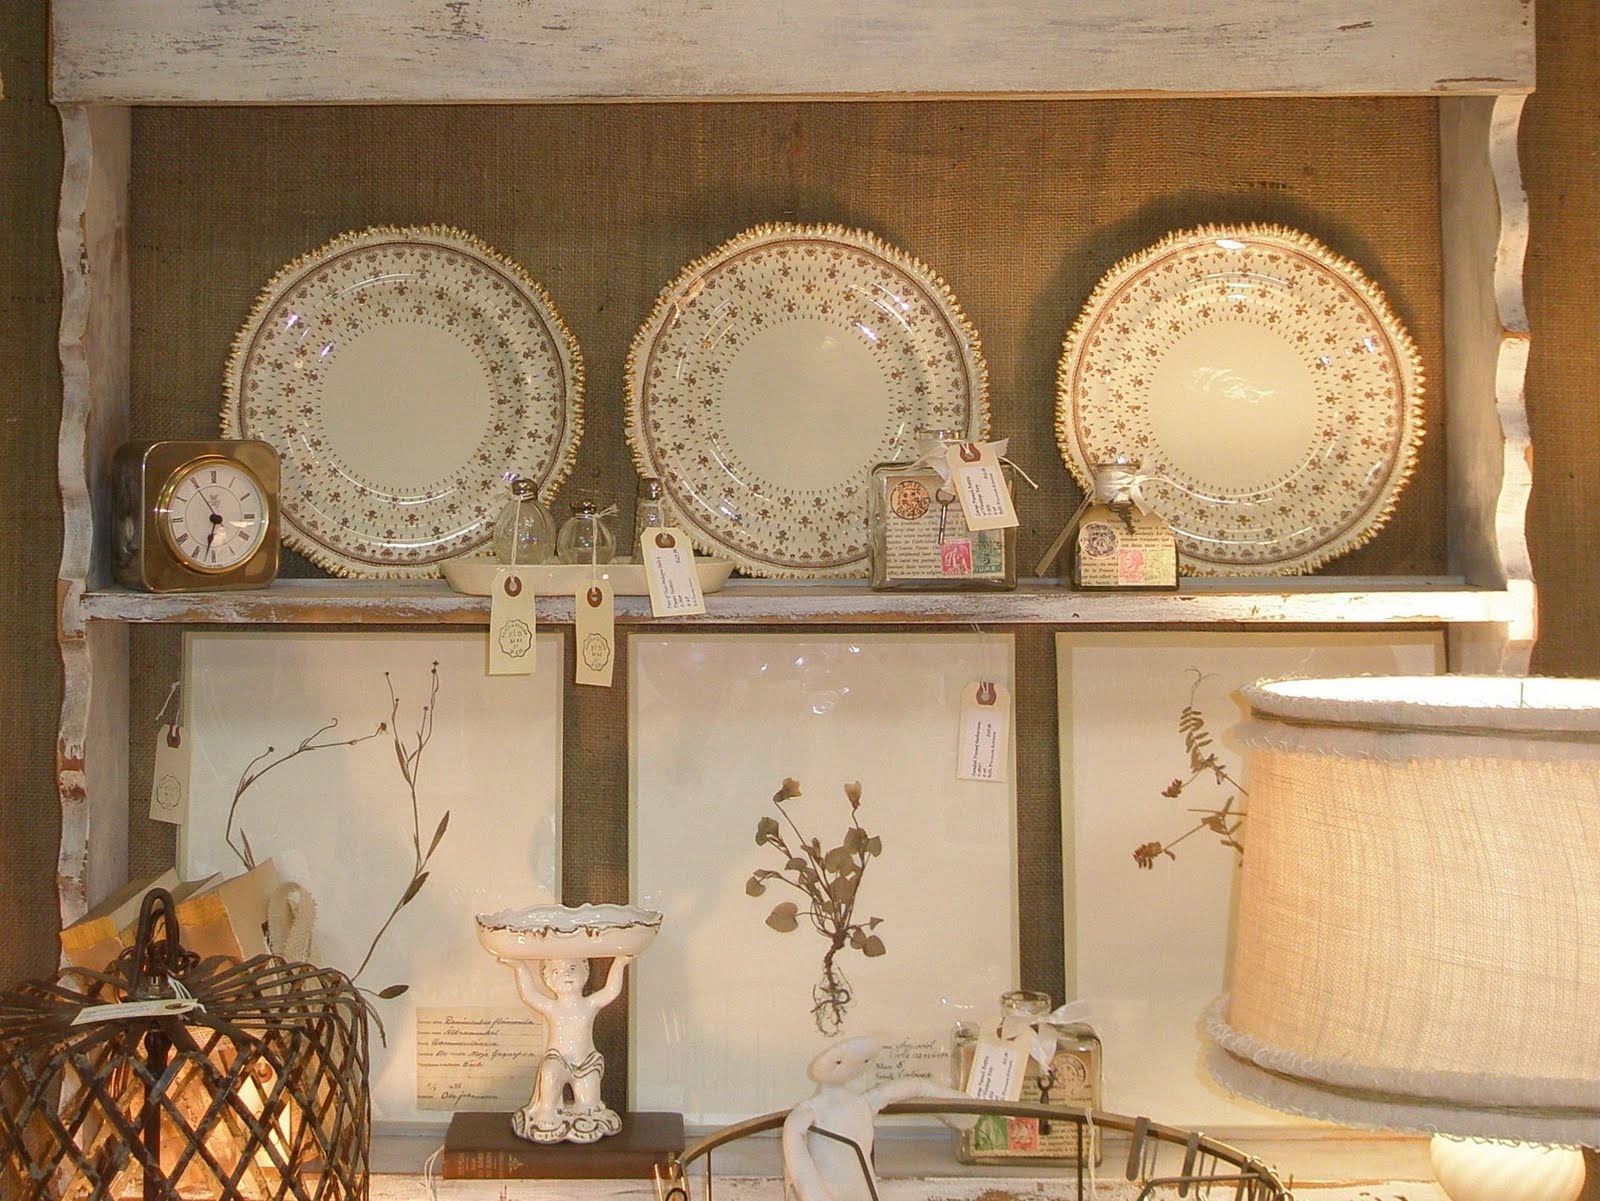 belle francaise interiors french country retail therapy kitchen wall decor ideas about - Country French Decor